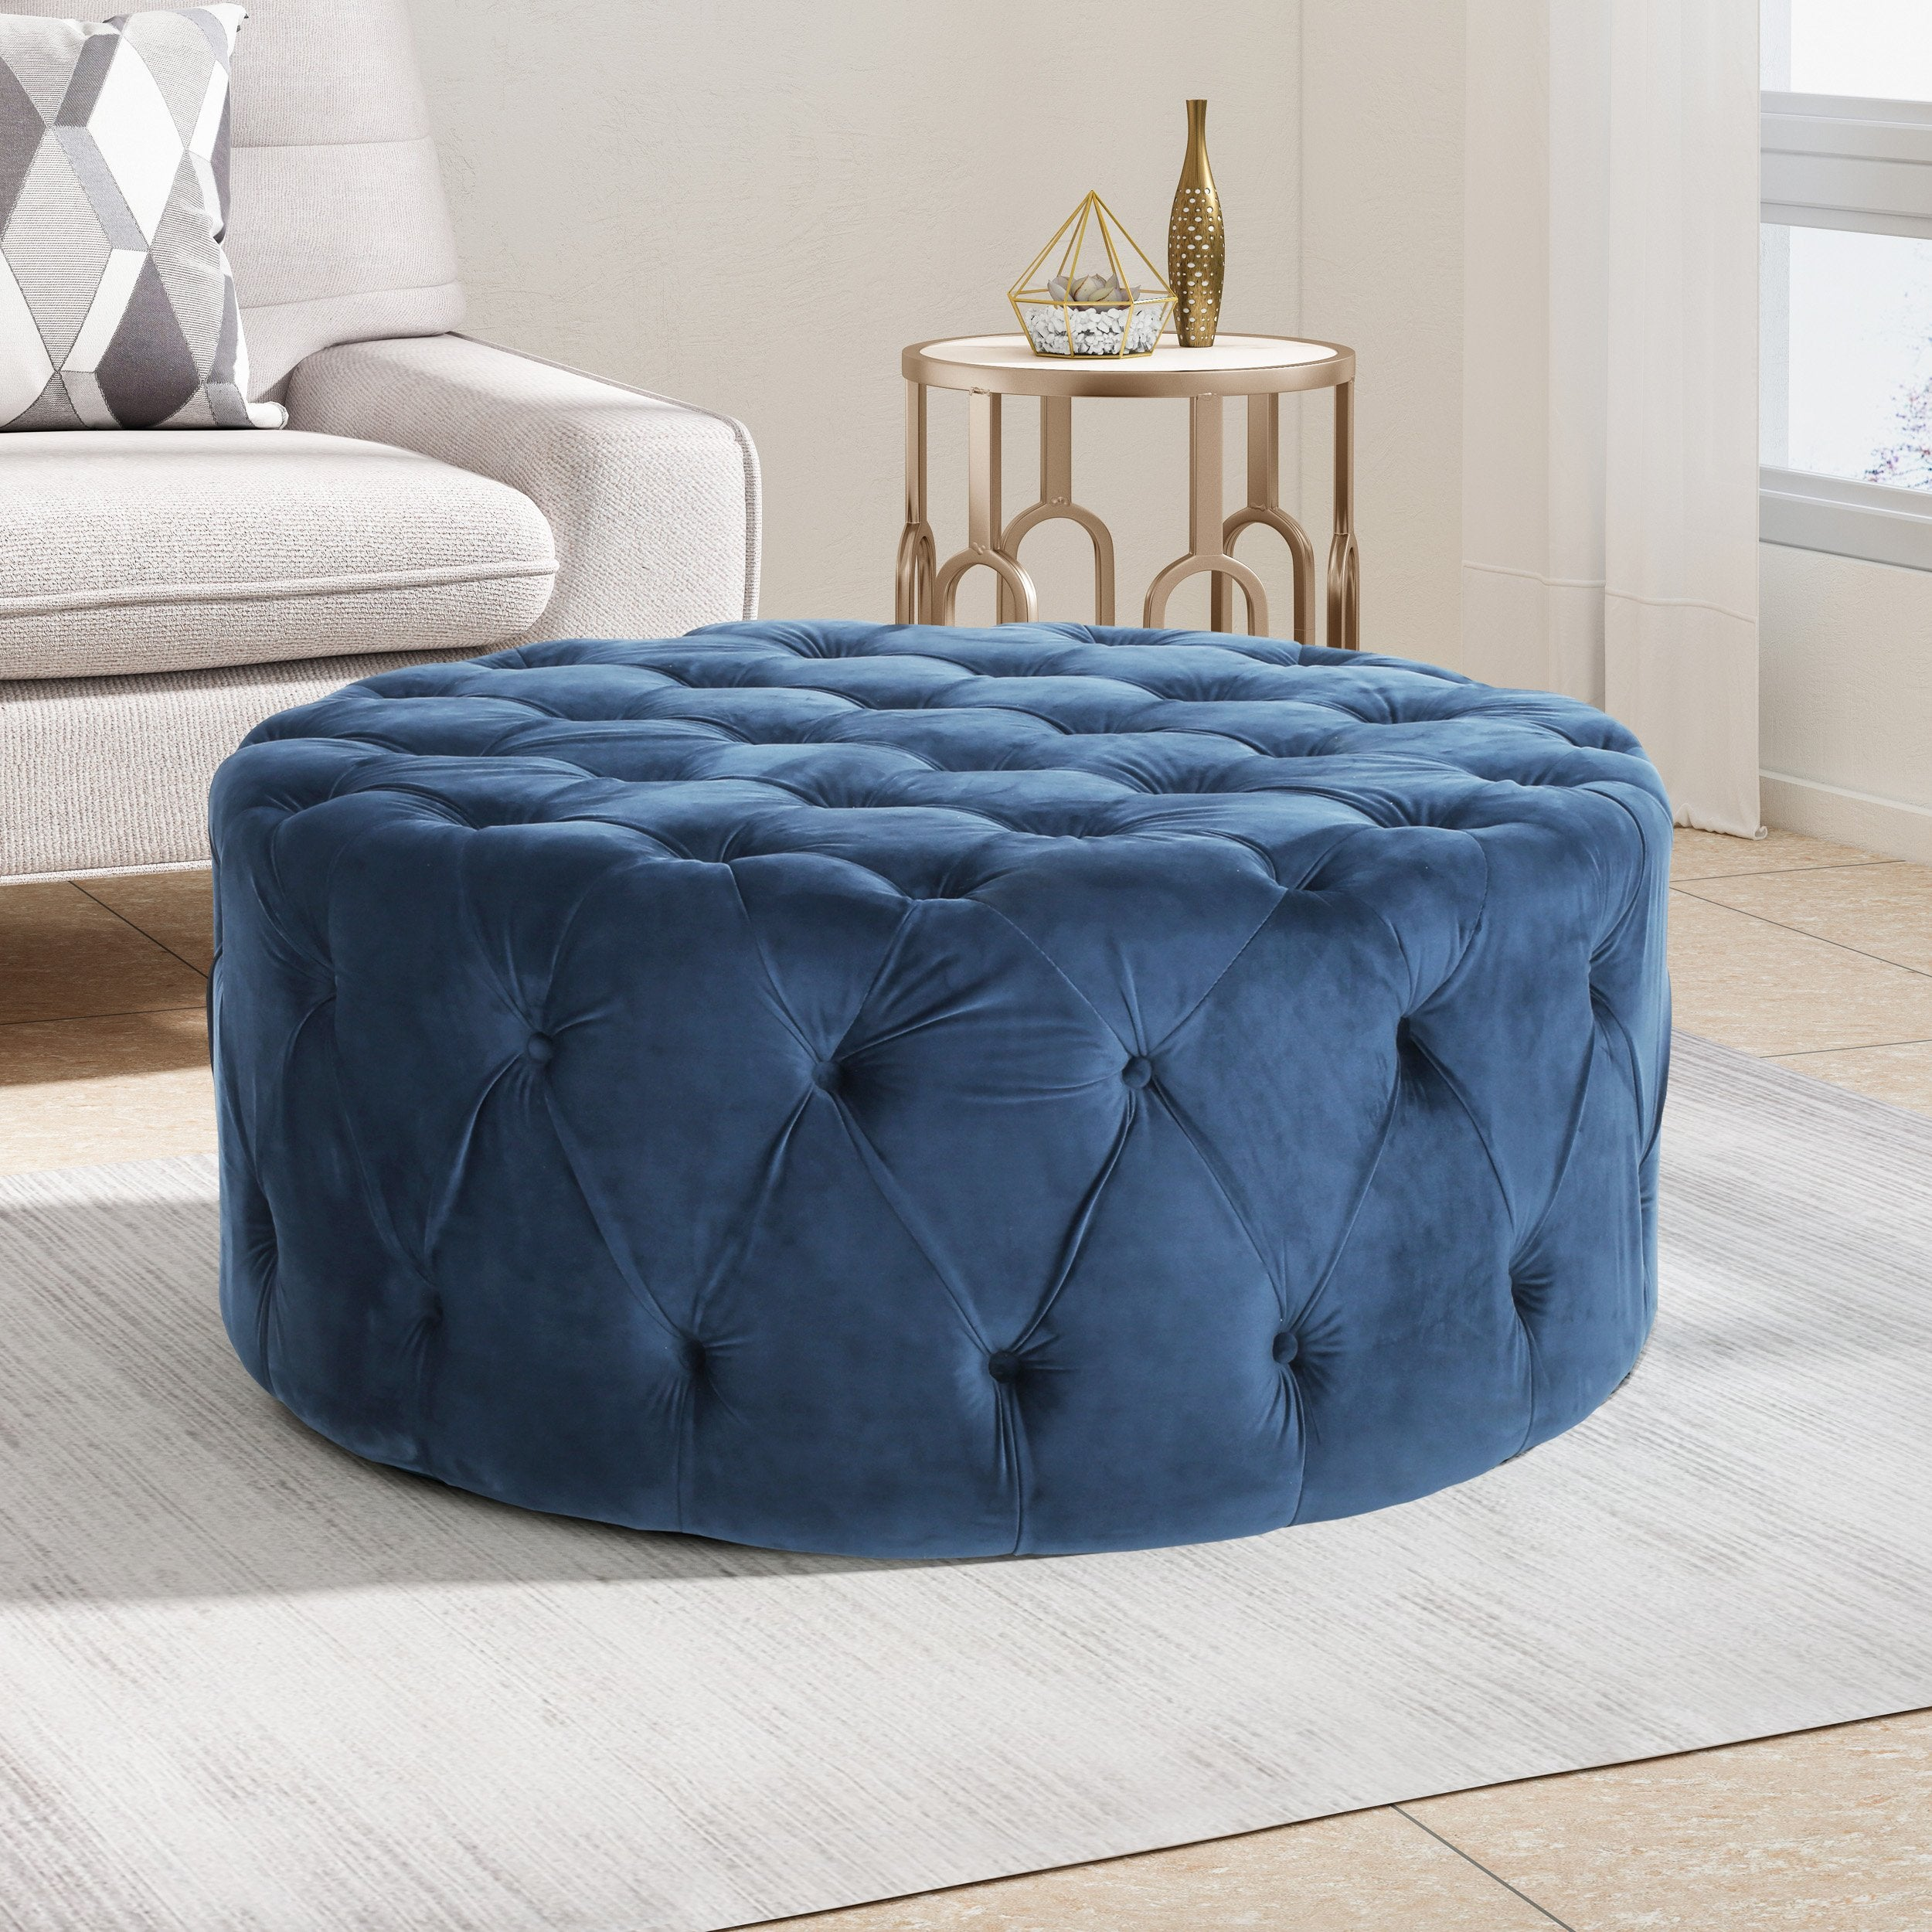 Modern Glam Round Tufted Velvet Ottoman Coffee Table Nh552213 Noble House Furniture